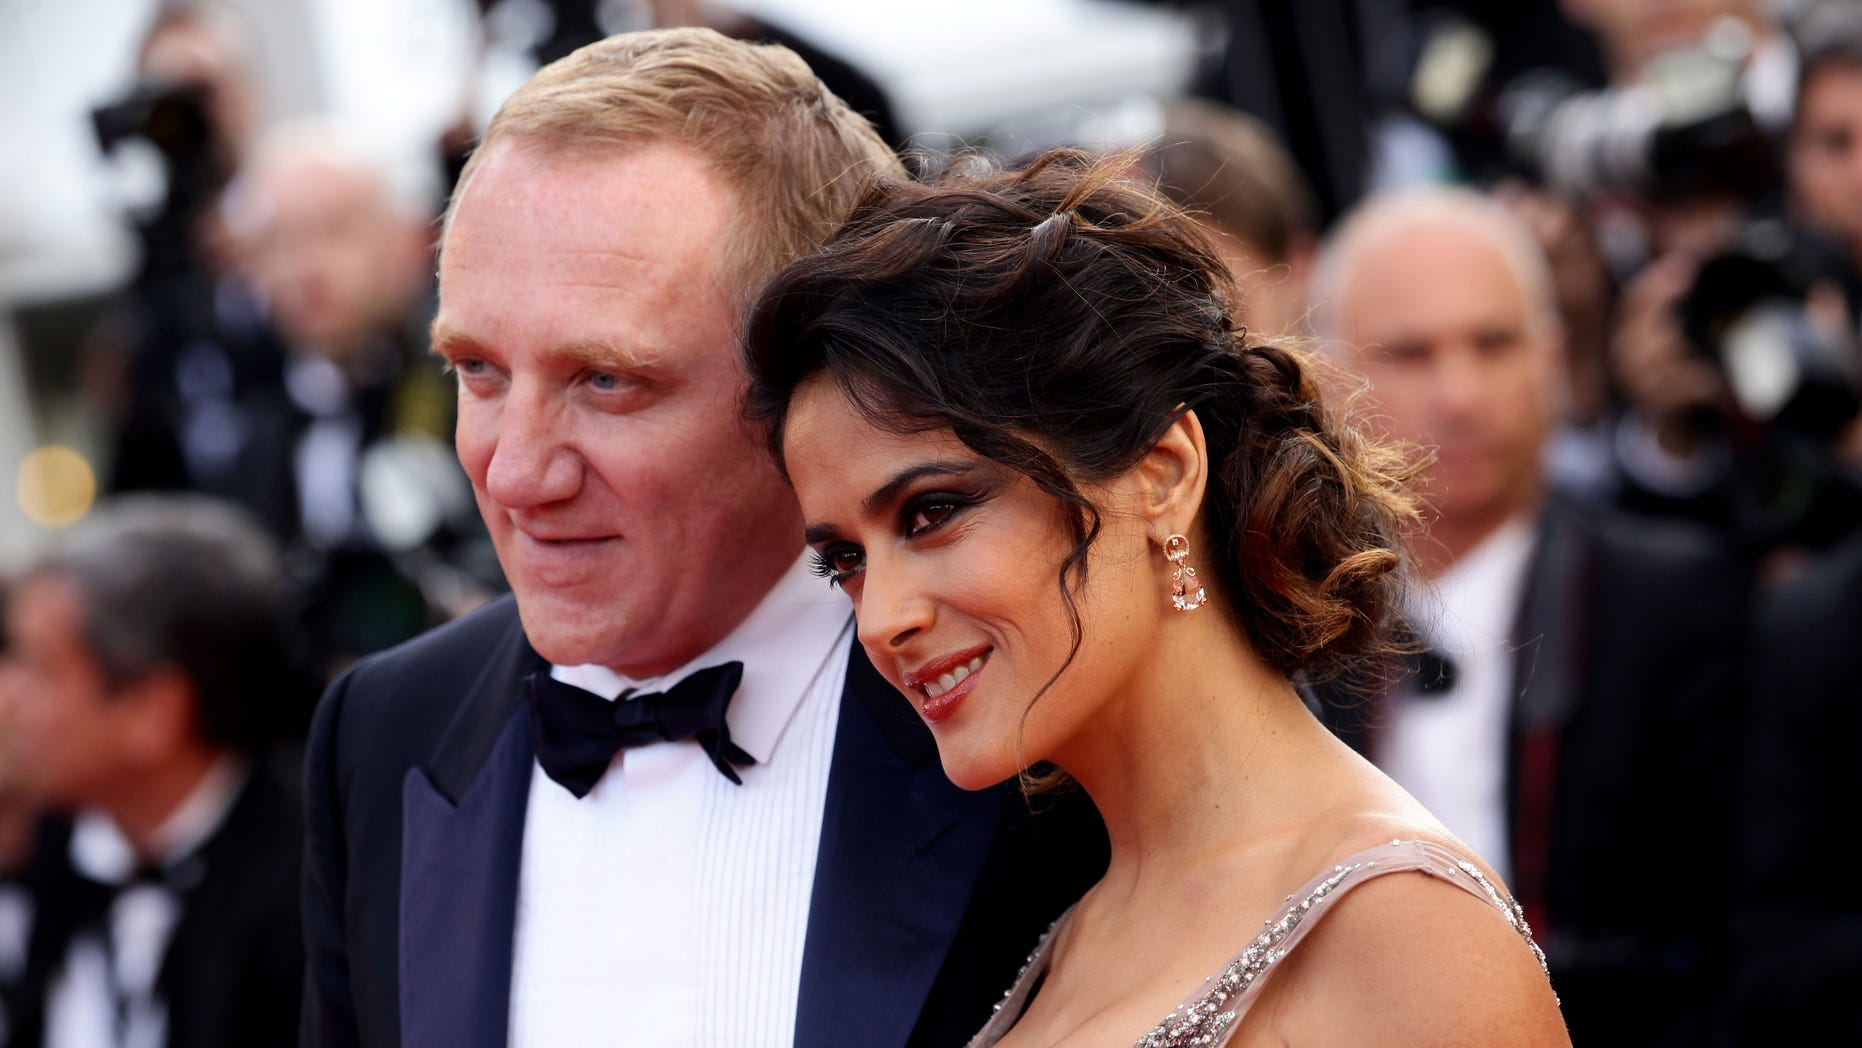 Salma Hayek revealed she shares intimate text messages with husband Francois-Henri Pinault.